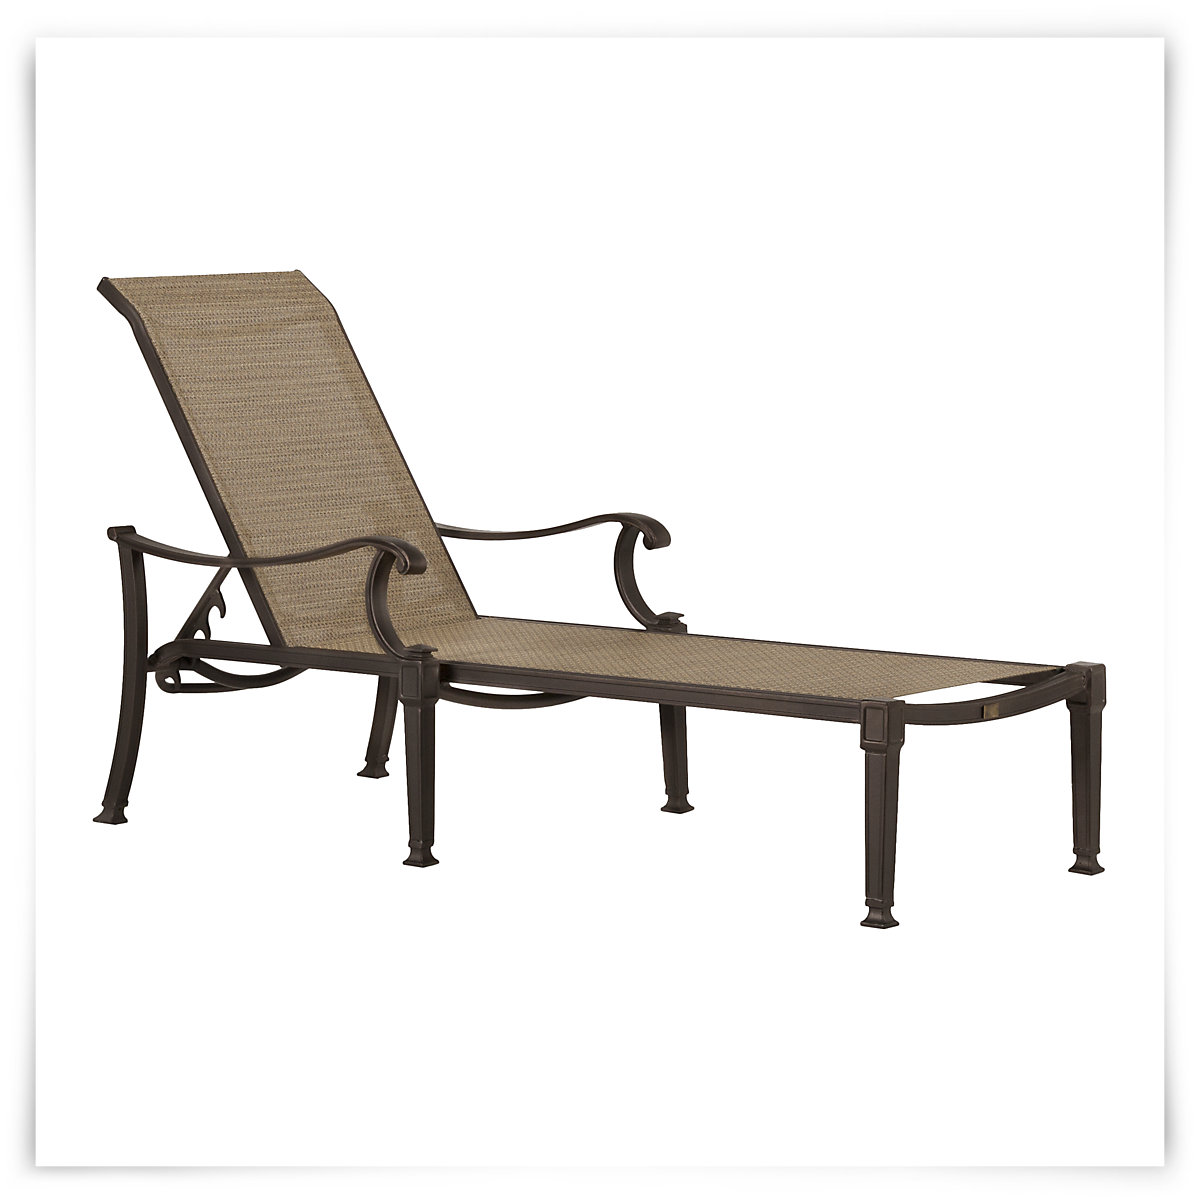 City Furniture: Primera Dark Tone Sling Chaise on Living Accents Sling Folding Chaise id=80503